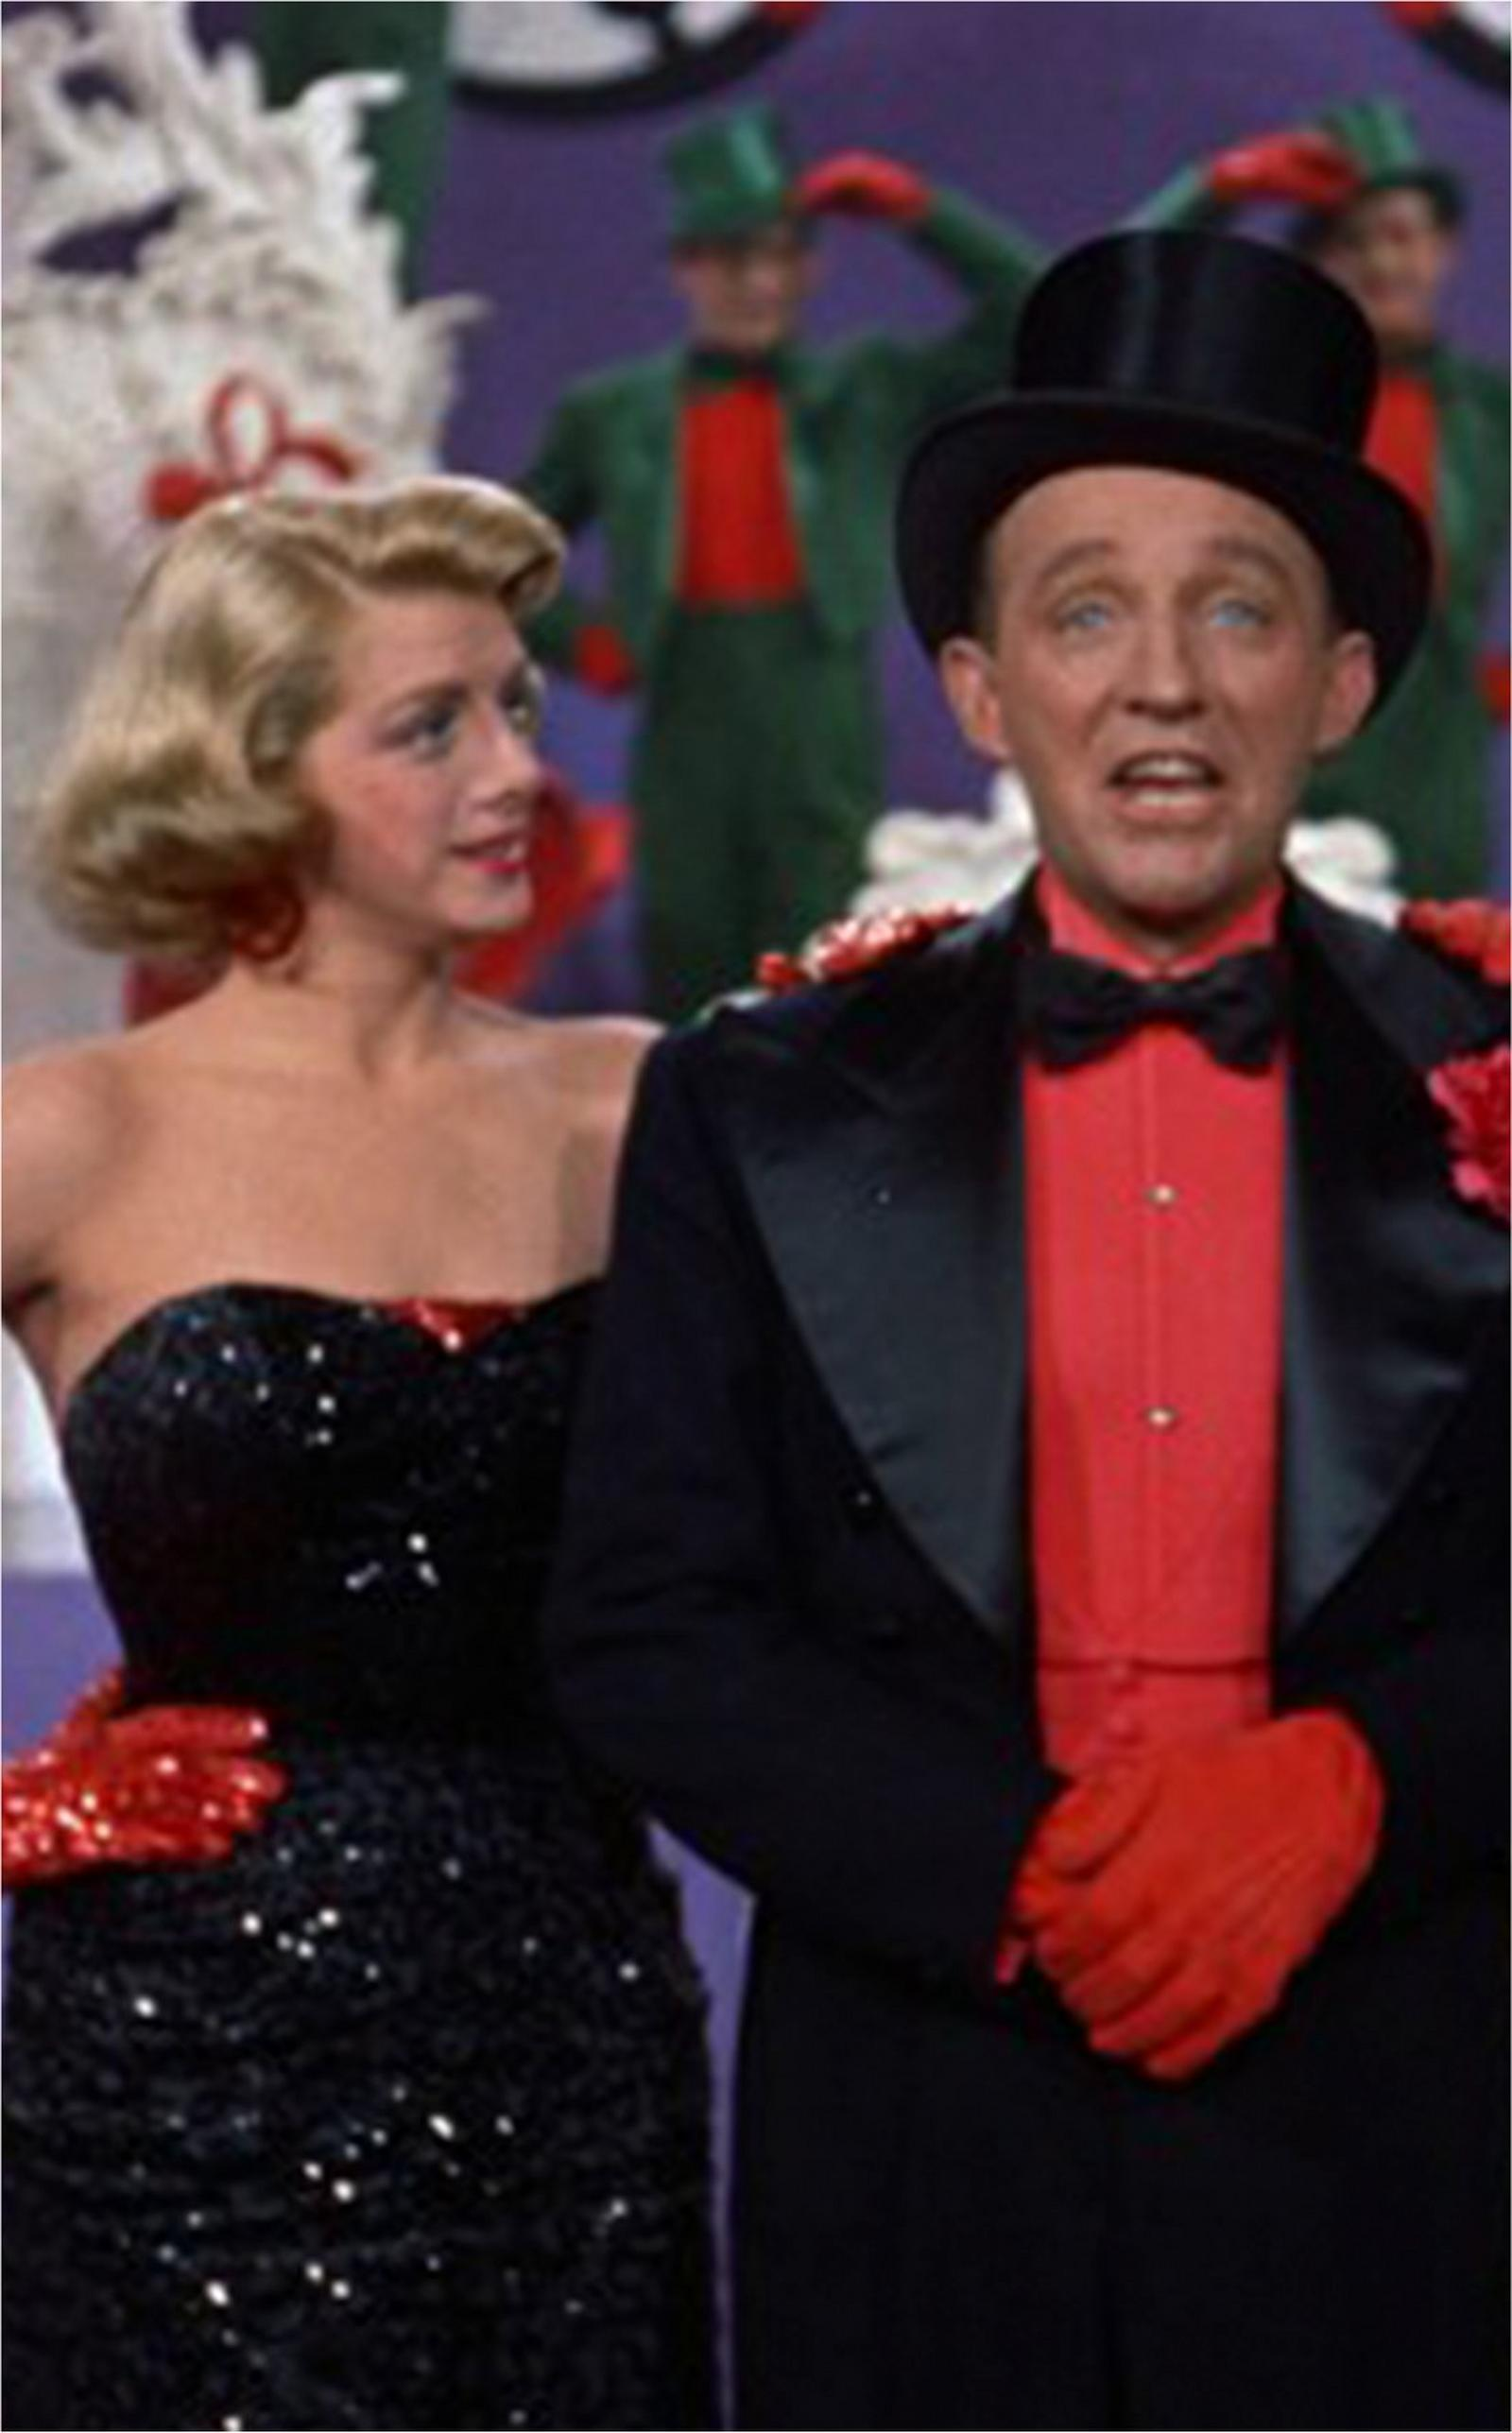 betty haynes from white christmas wearing a sequin black strapless dress standing next to a man in a festive outfit.